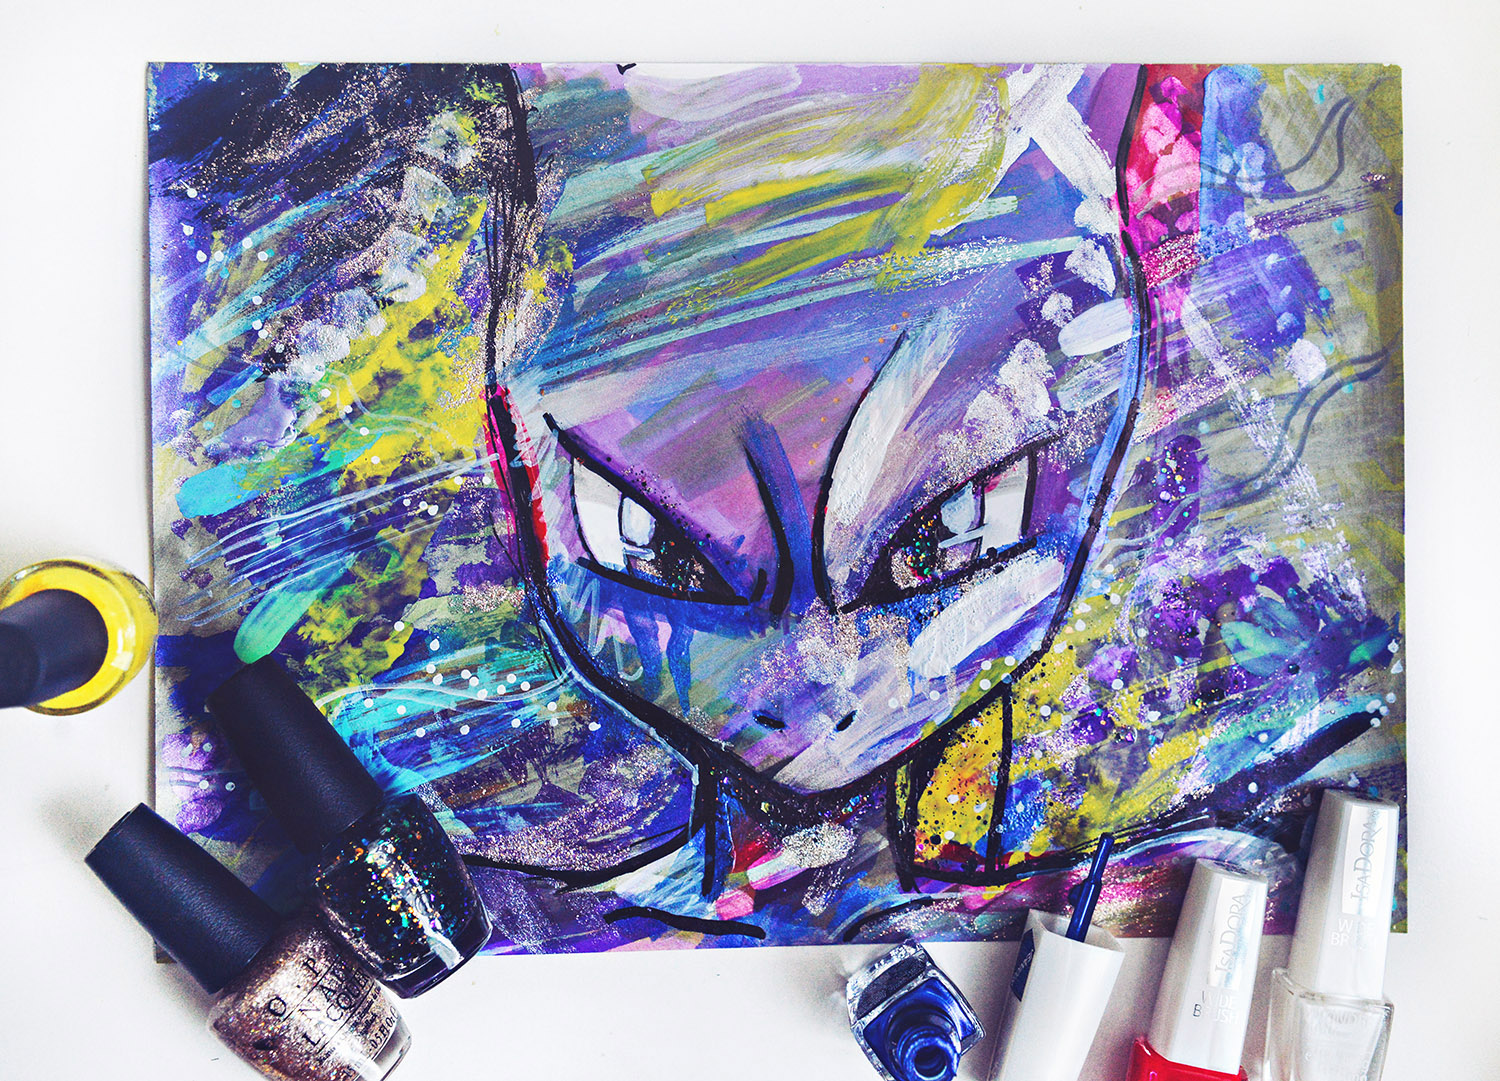 DIY: Nail Polish Painting | Pokémon Go Mewtwo Inspired Painting